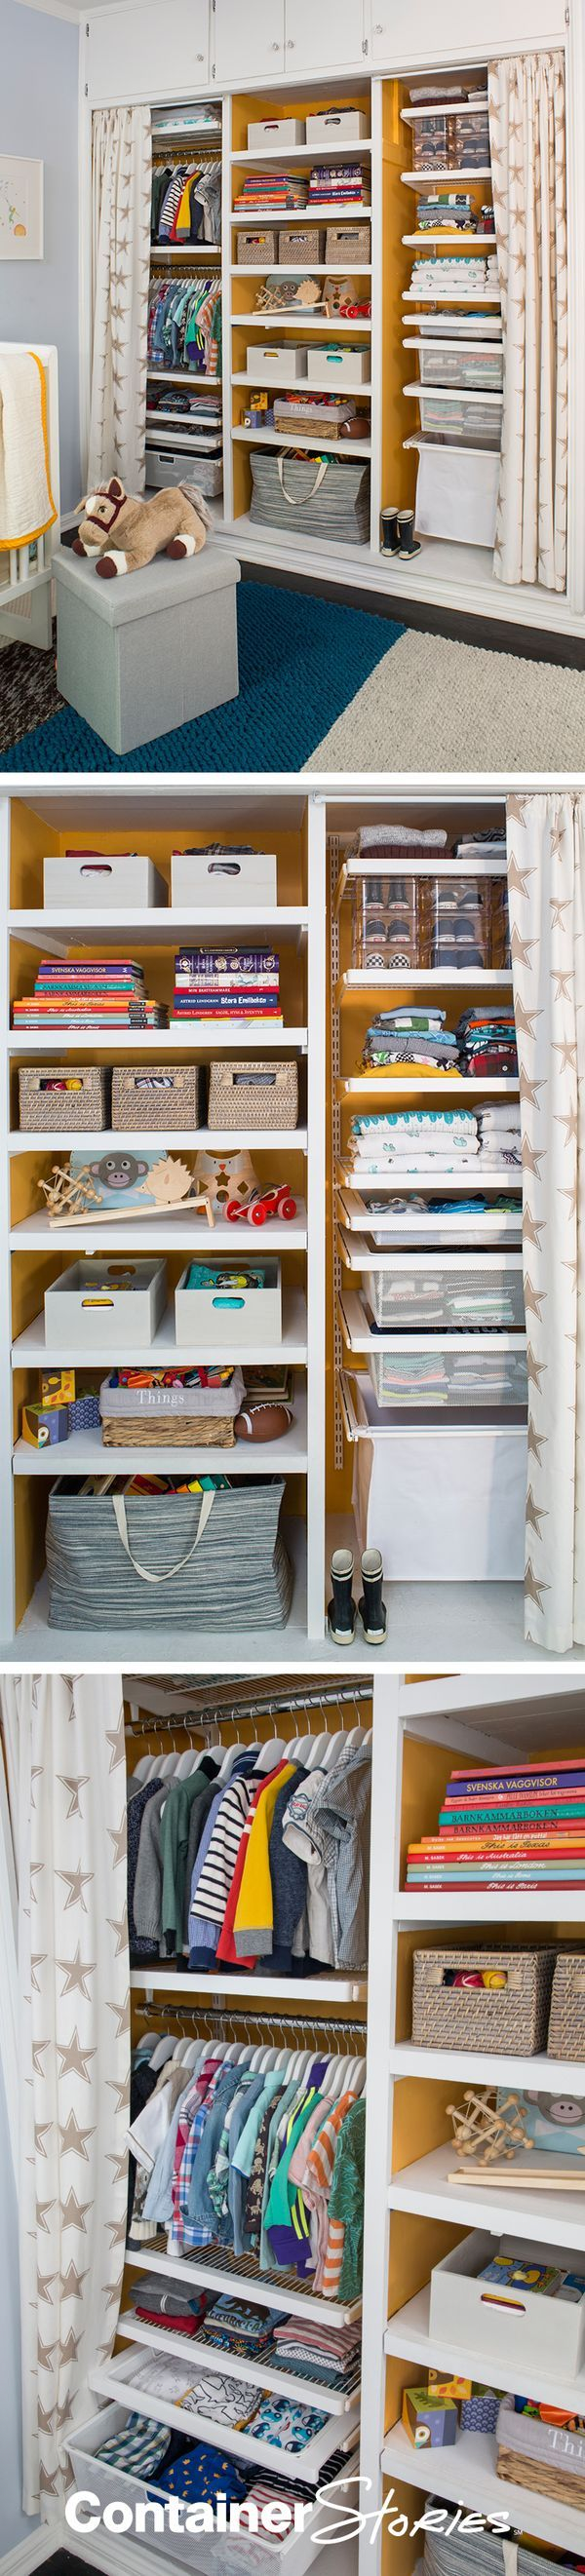 A Closet Fit For Baby Finn